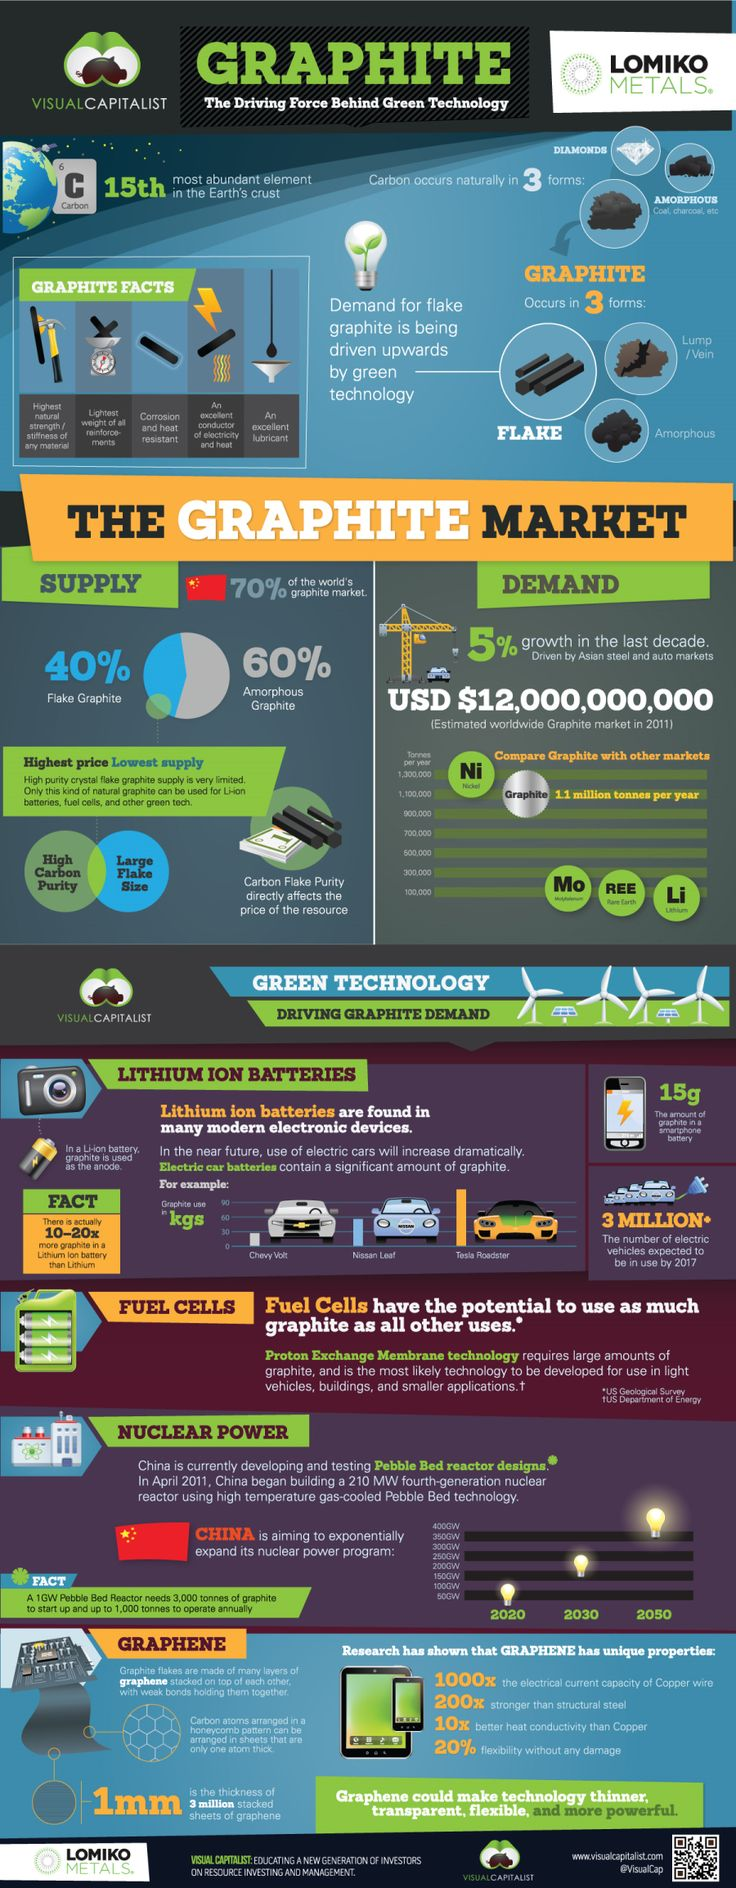 GRAPHITE: The Key Ingredient Behind Green Technology #infographic #socialmedia #in